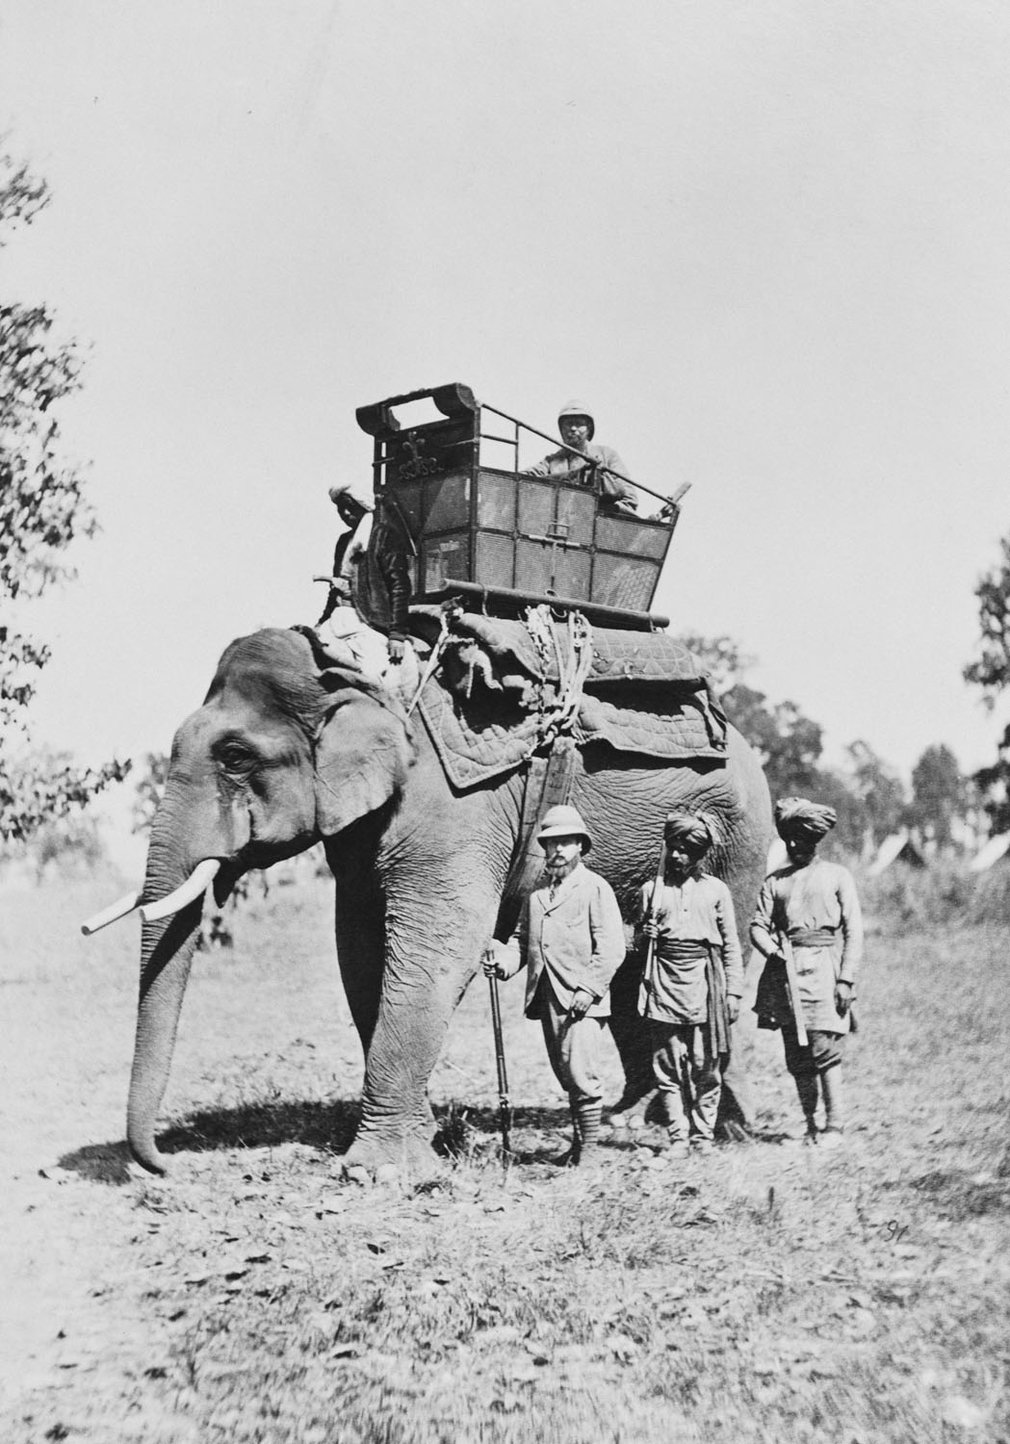 Photograph of elephant, standing with a driver and passenger on board. The Prince of Wales, later King Edward VII (1841-1910) and two Indians are standing in front of the elephant.